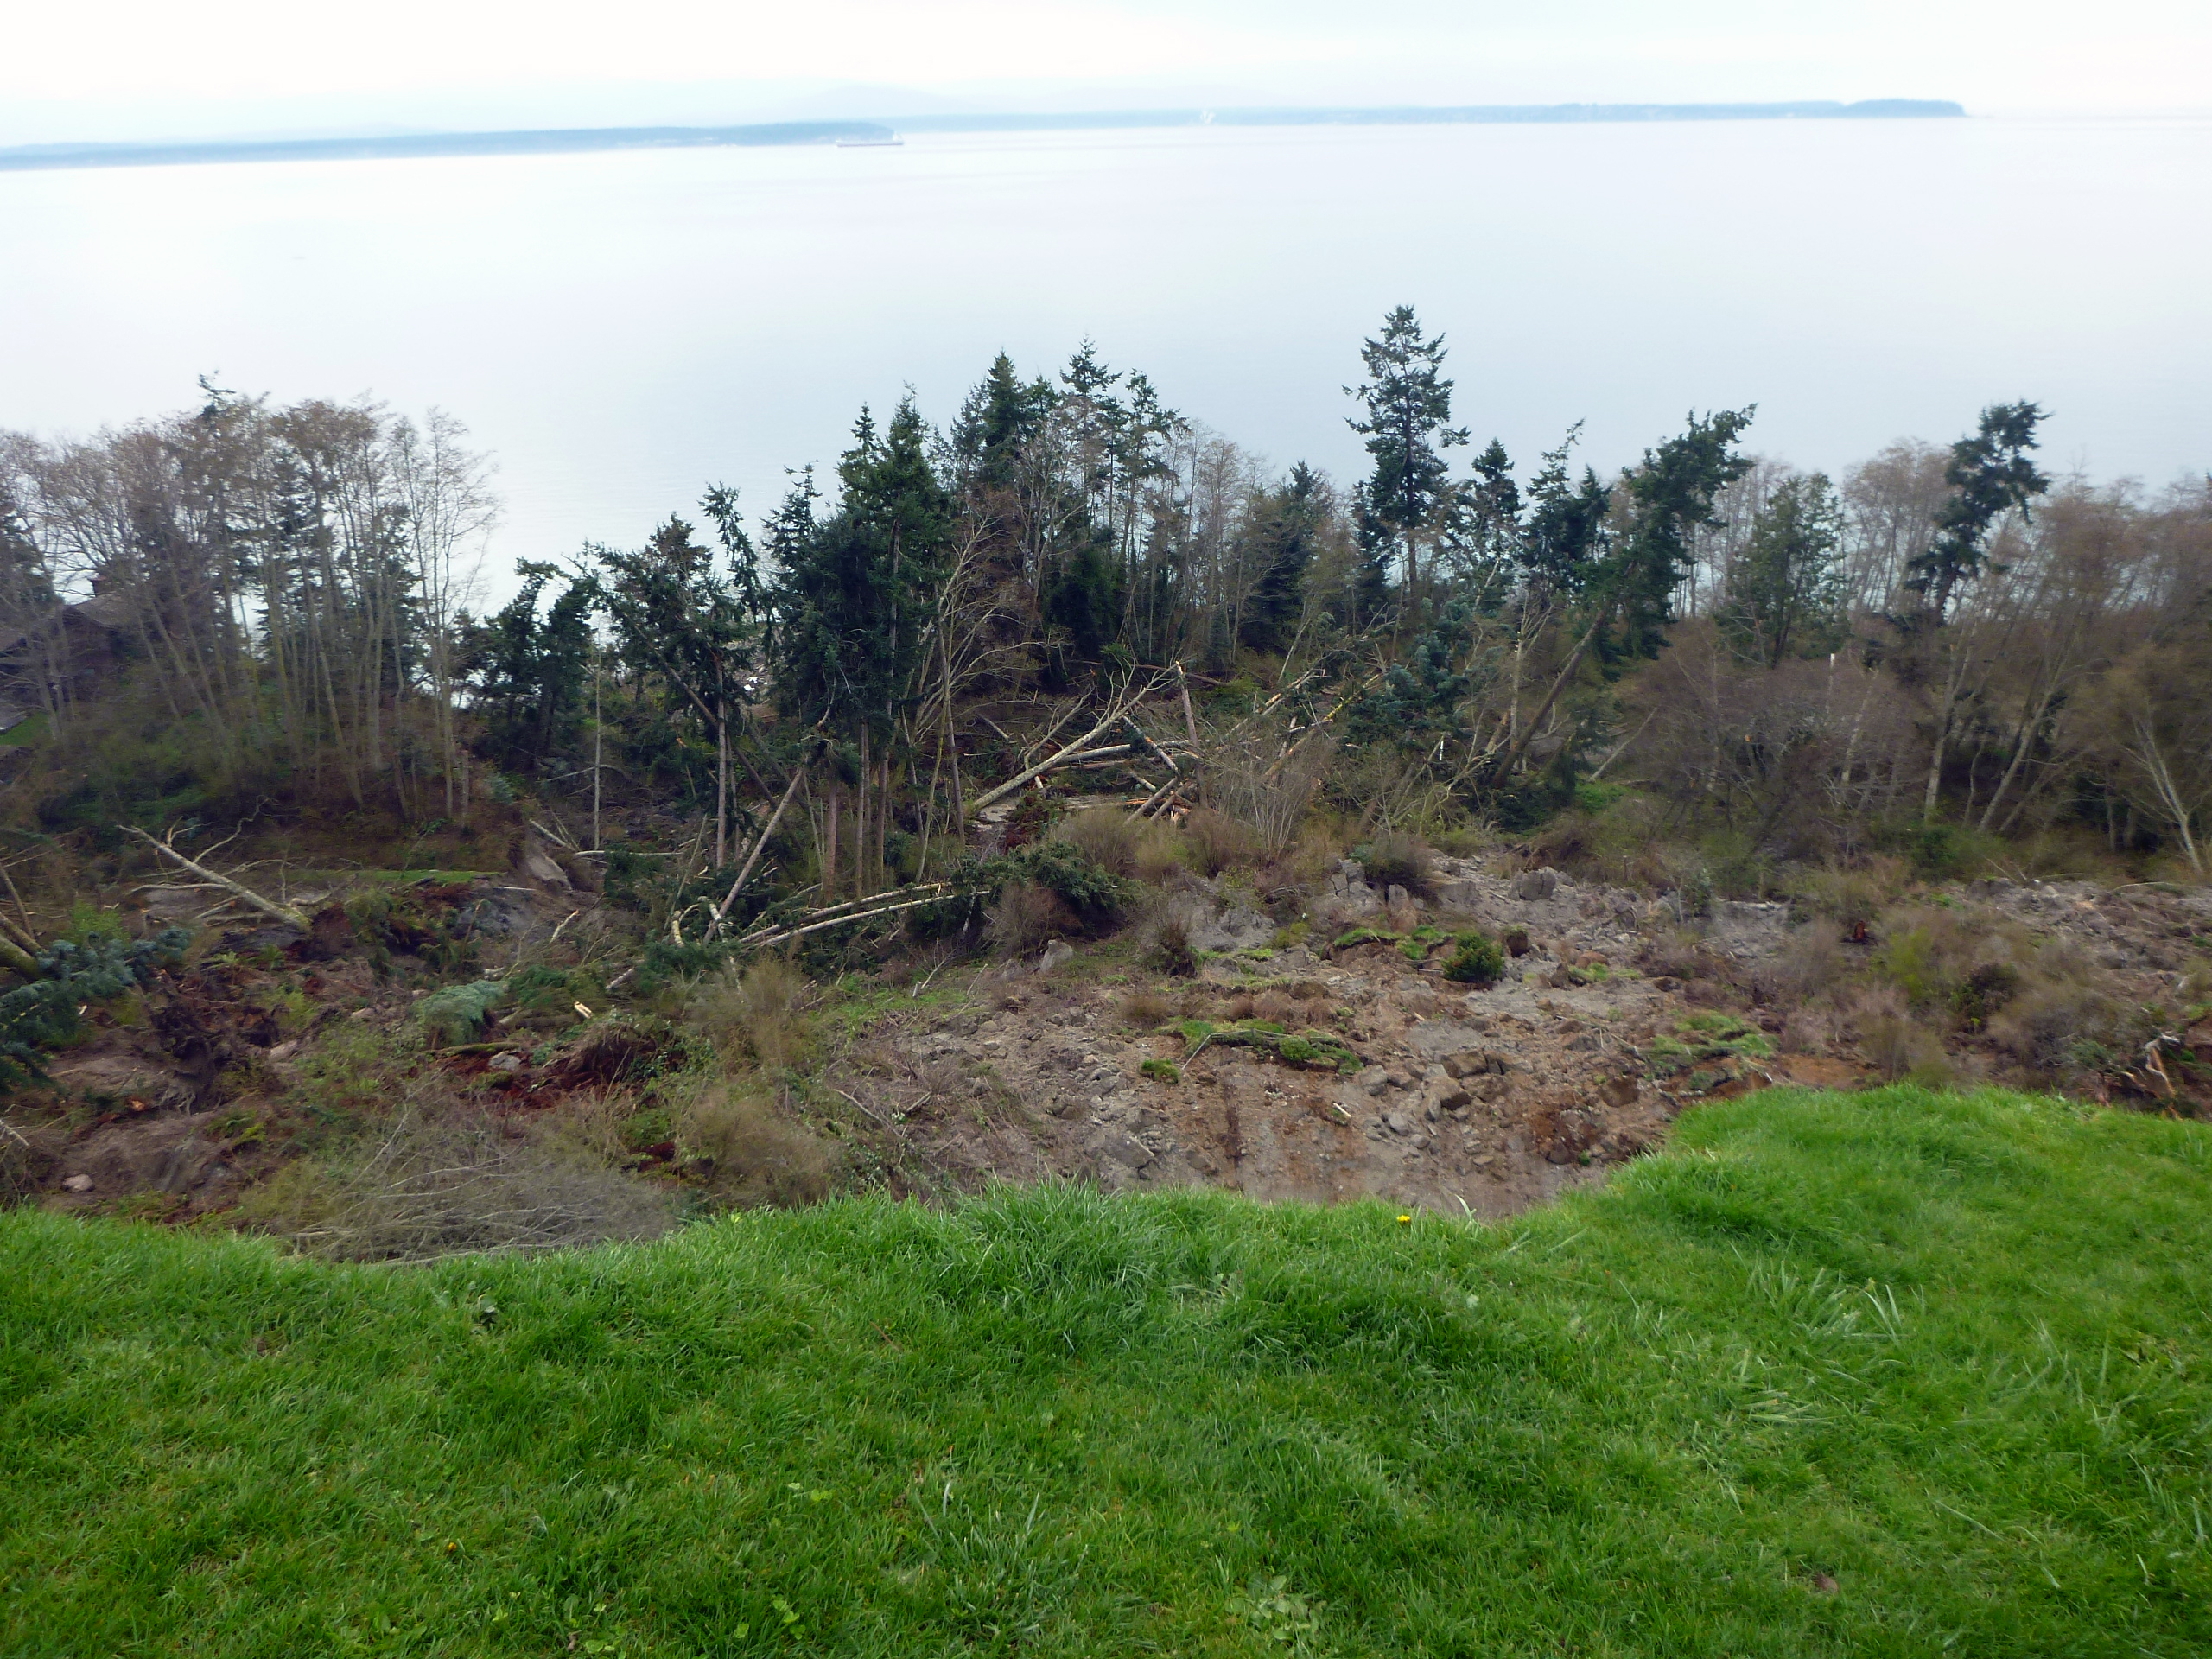 Camano Island Dump Whidbey Island Coupeville Landslide Ear To The Ground By